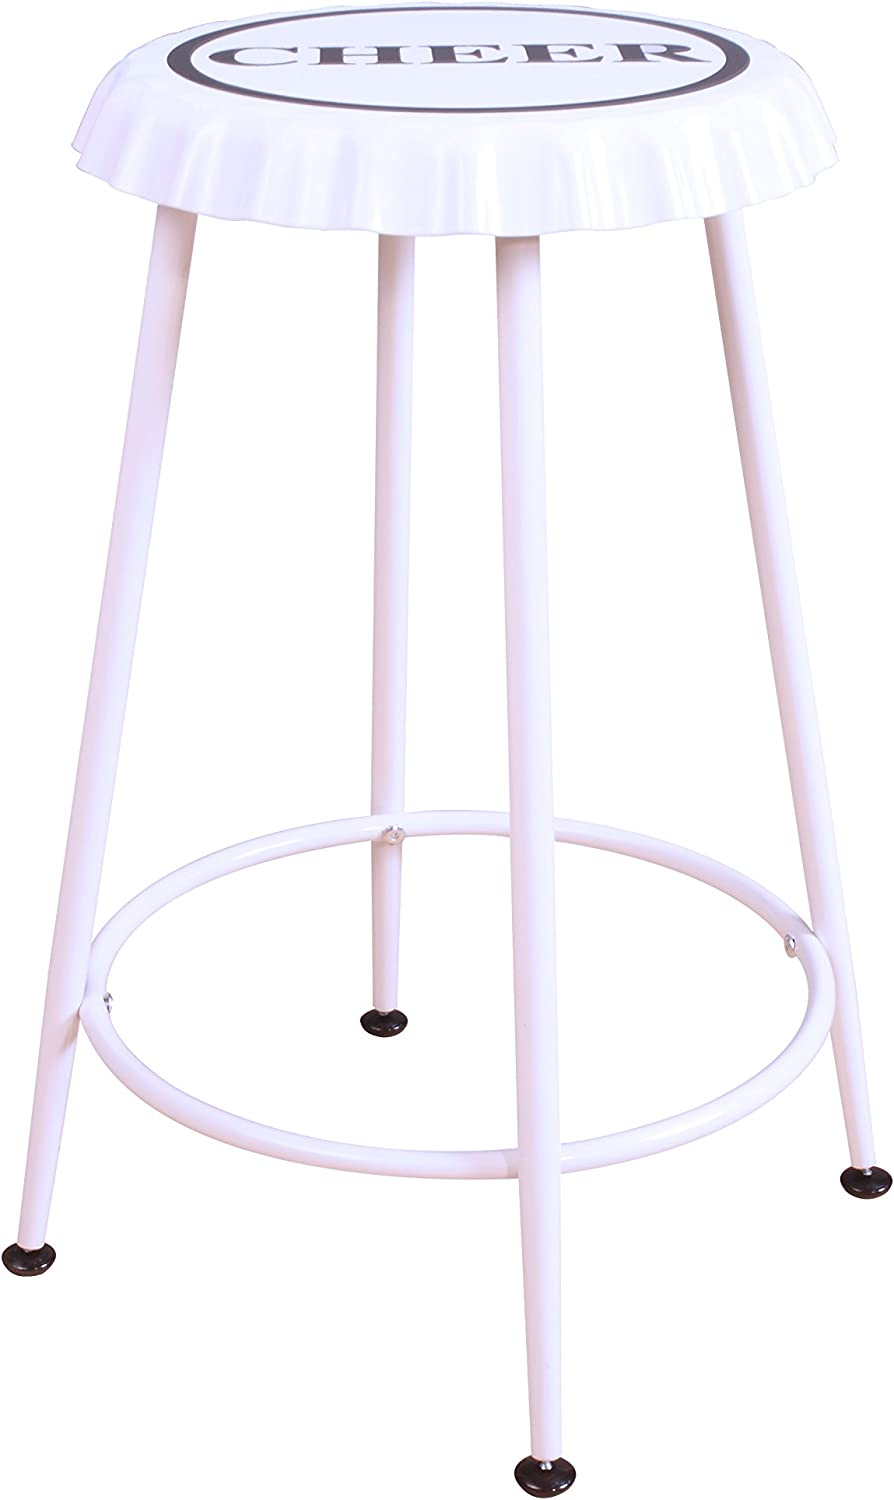 ACME Furniture Acme 72702 Mant Stool, White -Set of 2, One Size